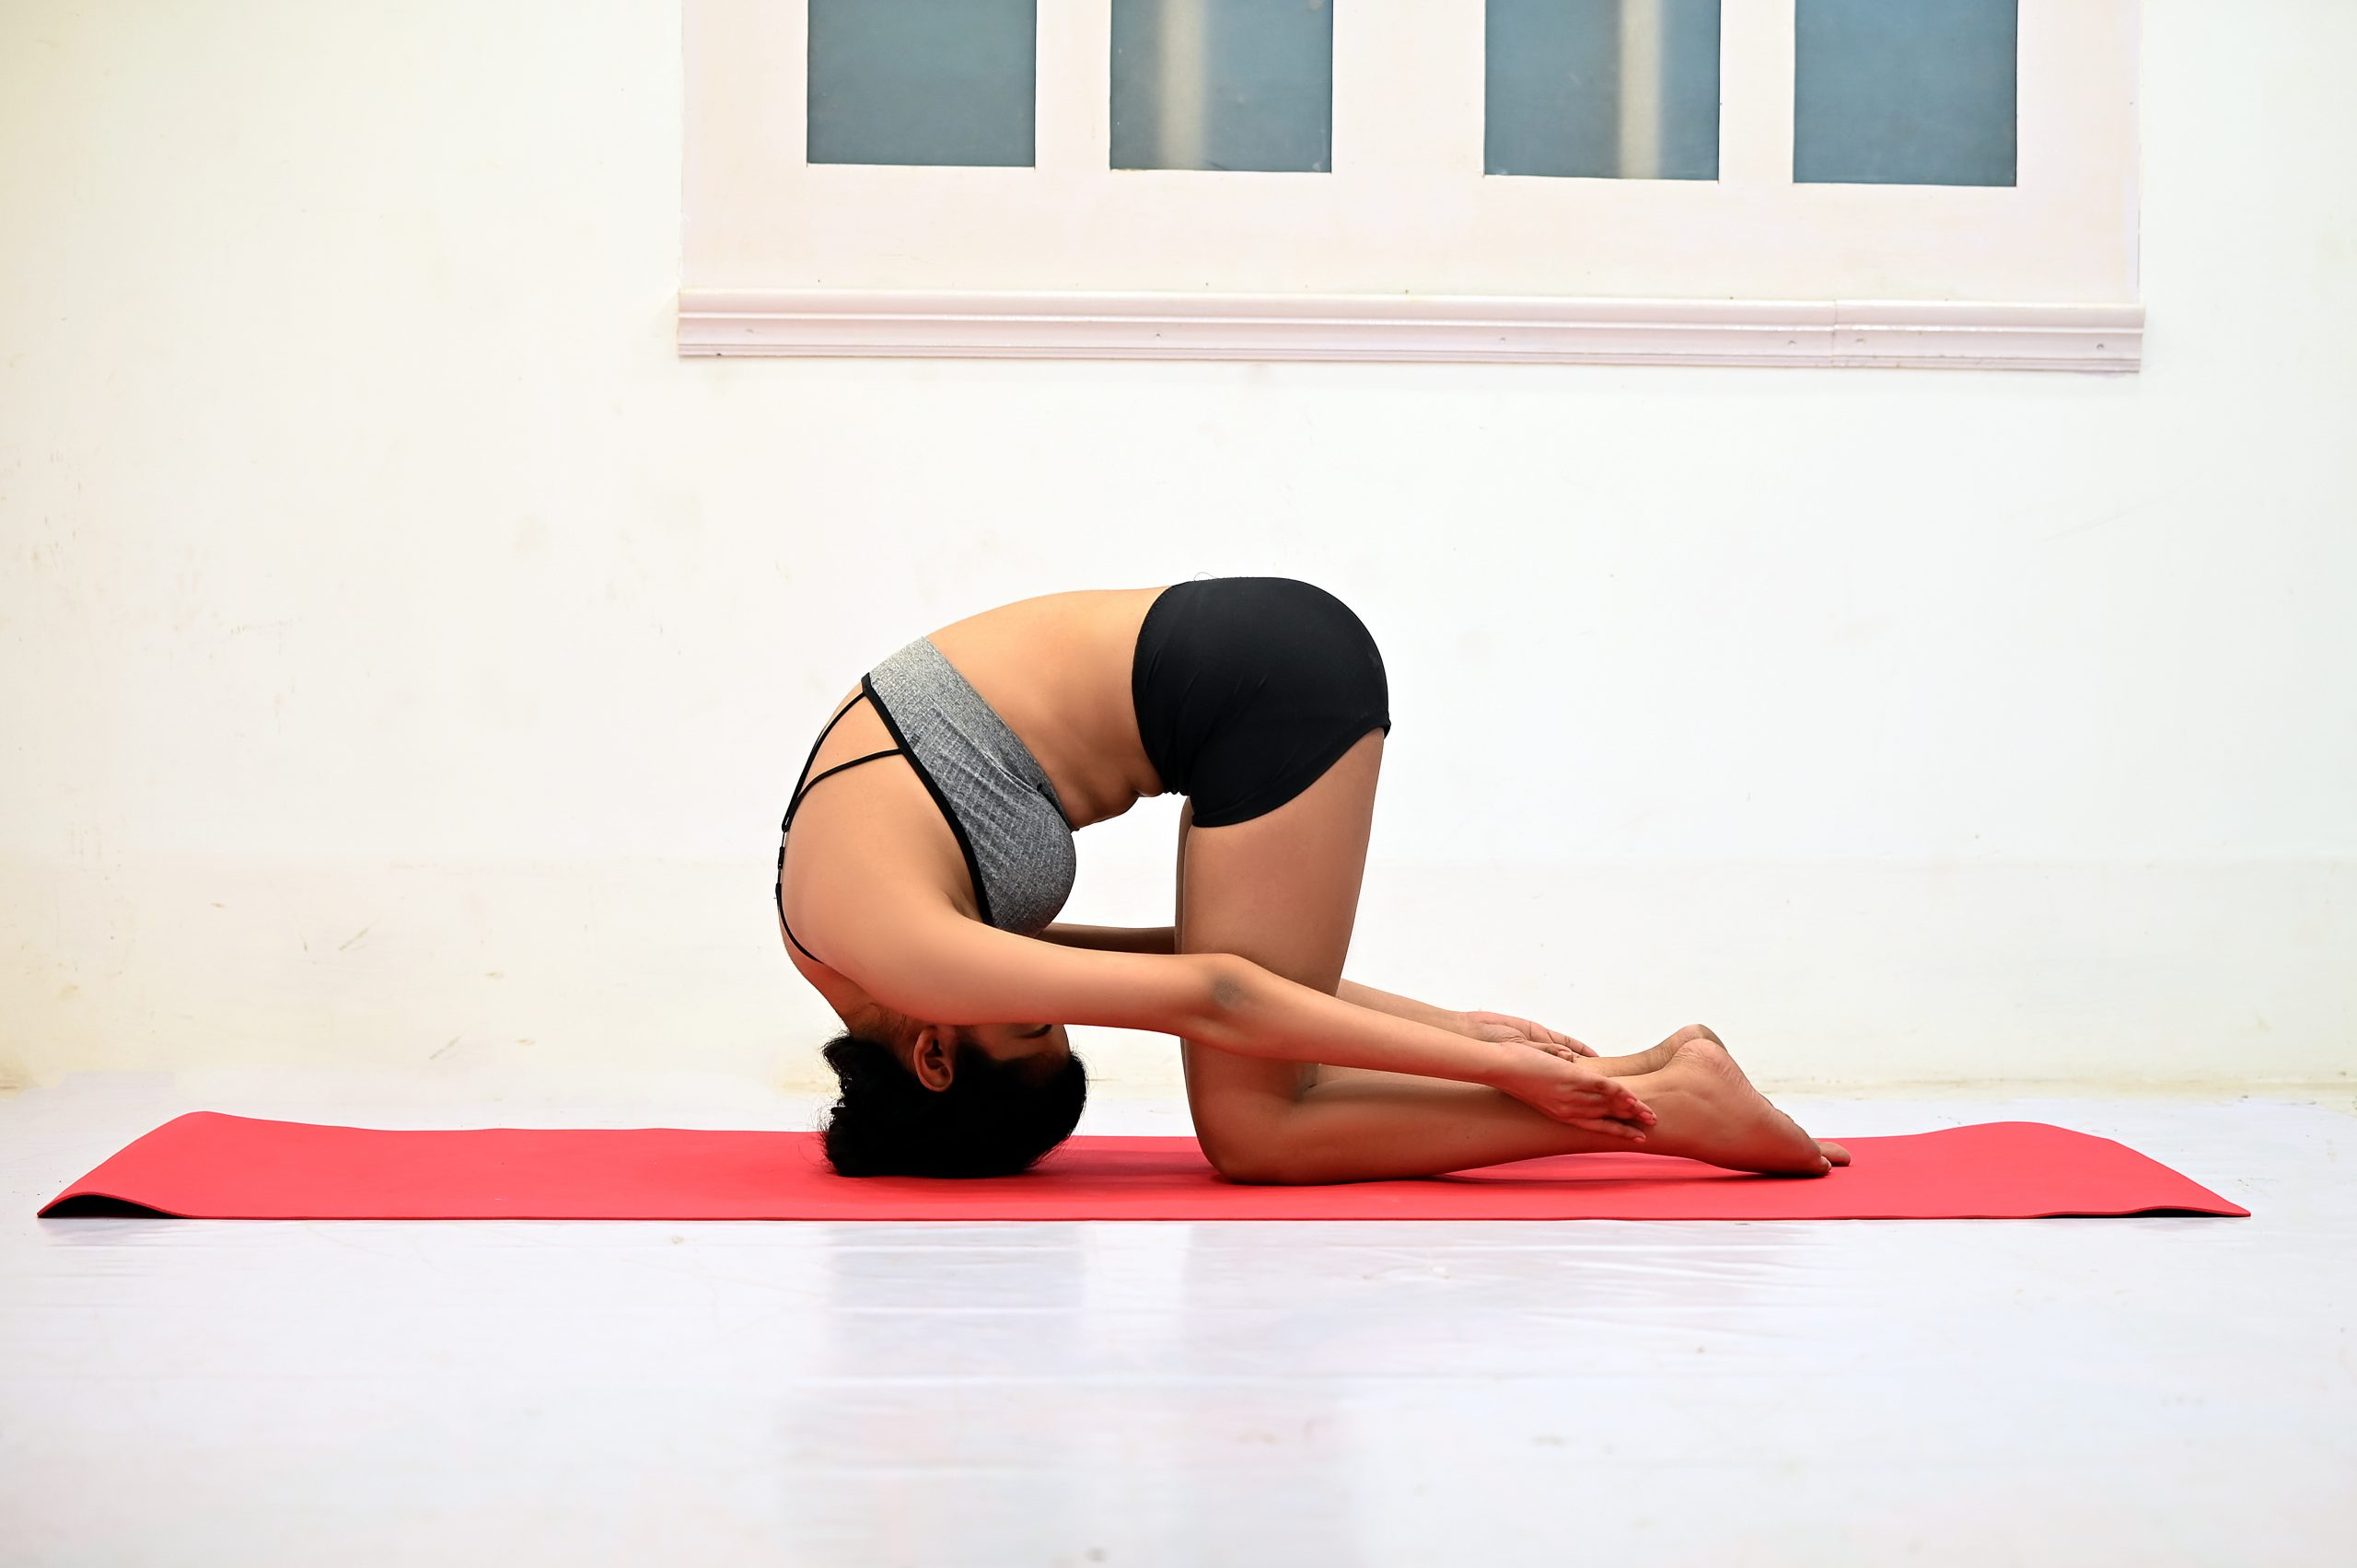 Girl doing Yoga on yoga mat